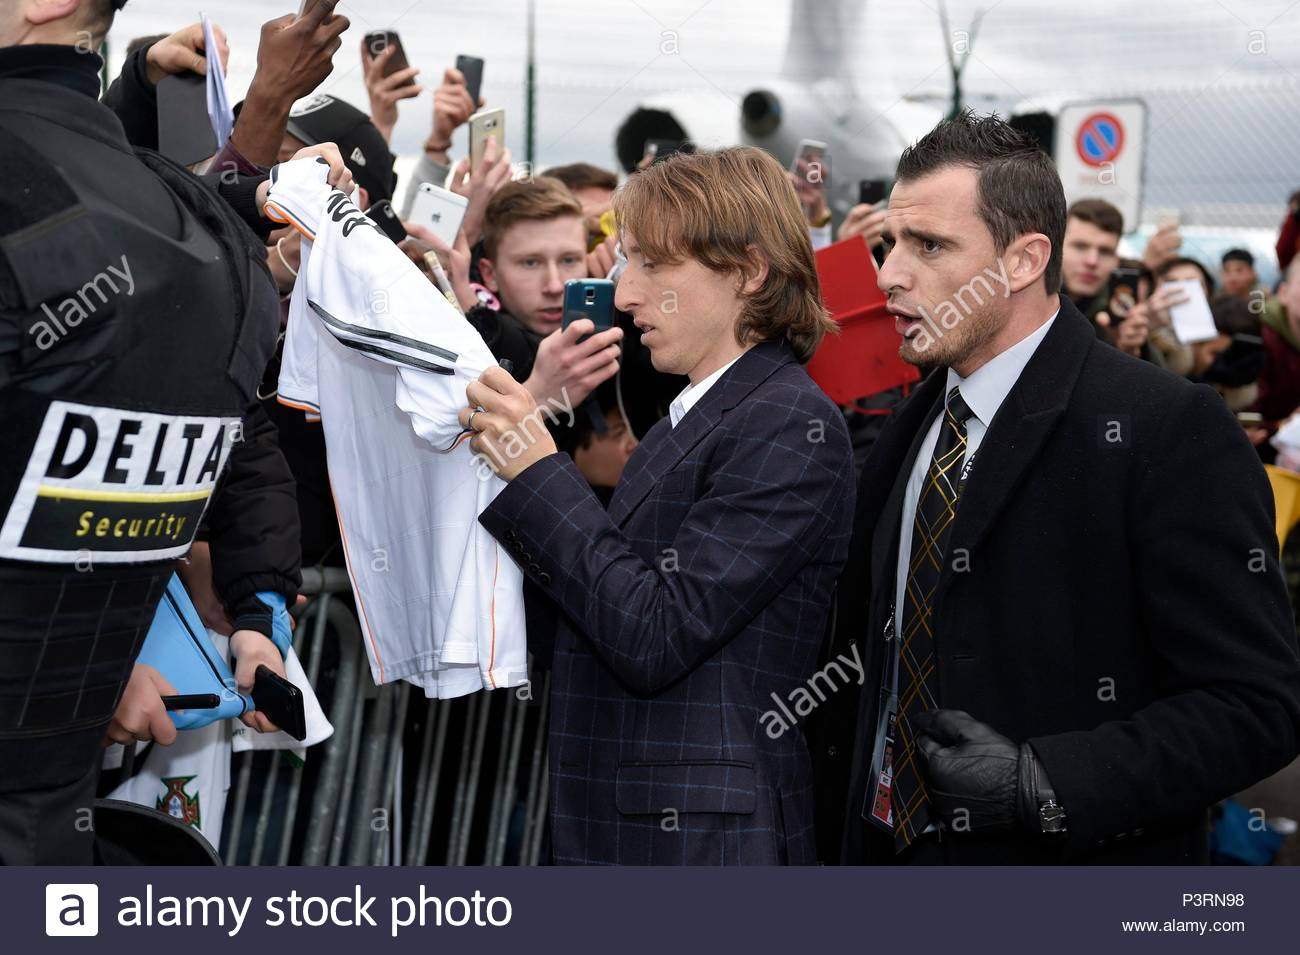 Luka Modric. 11JAN2016 Soccer stars arriving at Zurich airport for the FIFA Ballon d'Or Gala 2015 at the Kongresshalle in Zurich. - Stock Image